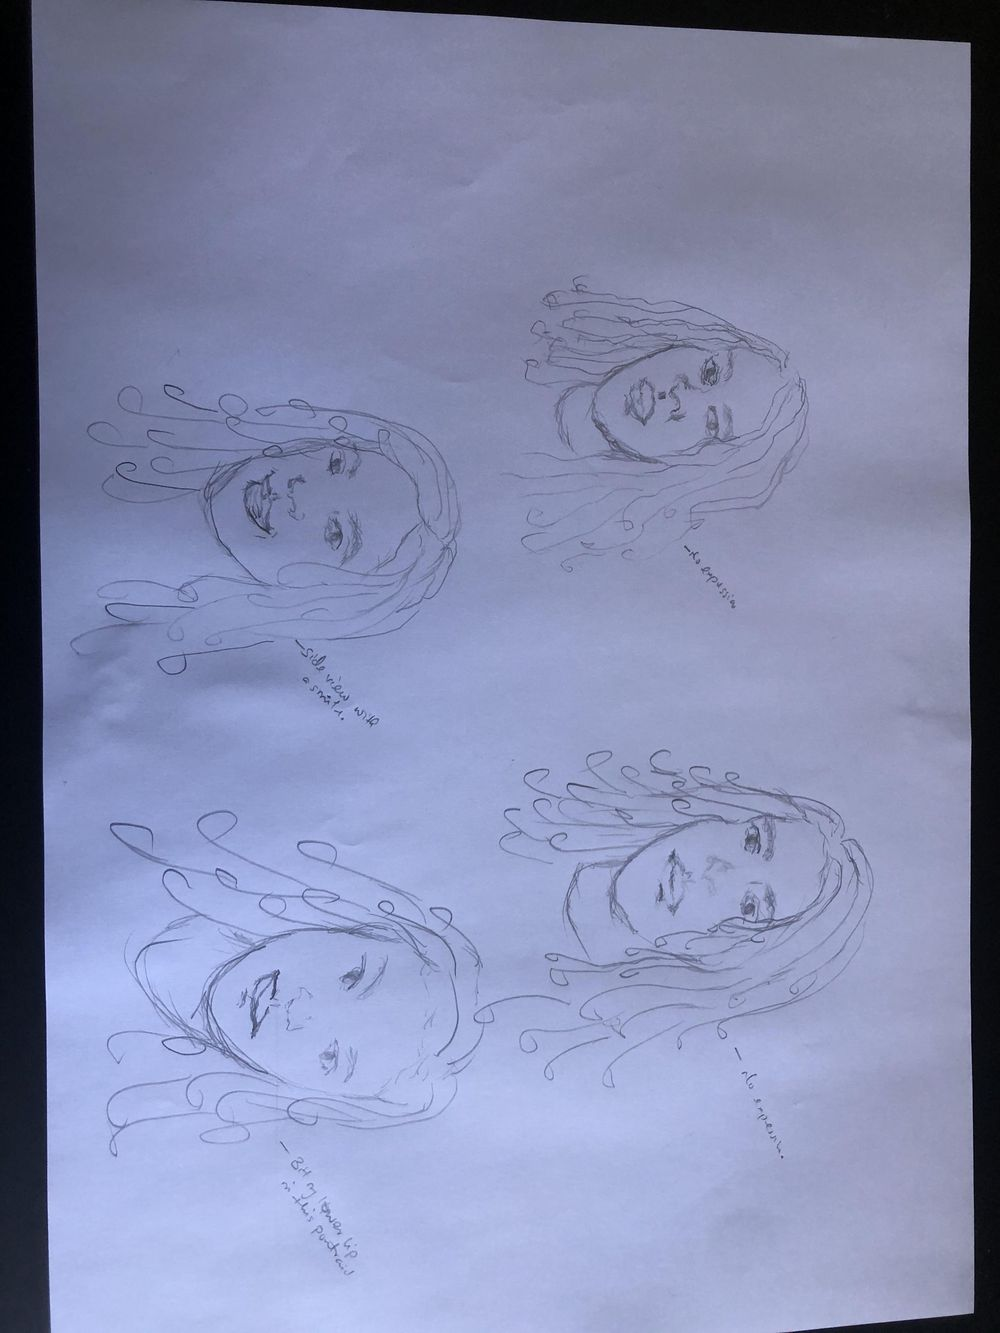 Self expressive portraits - image 1 - student project